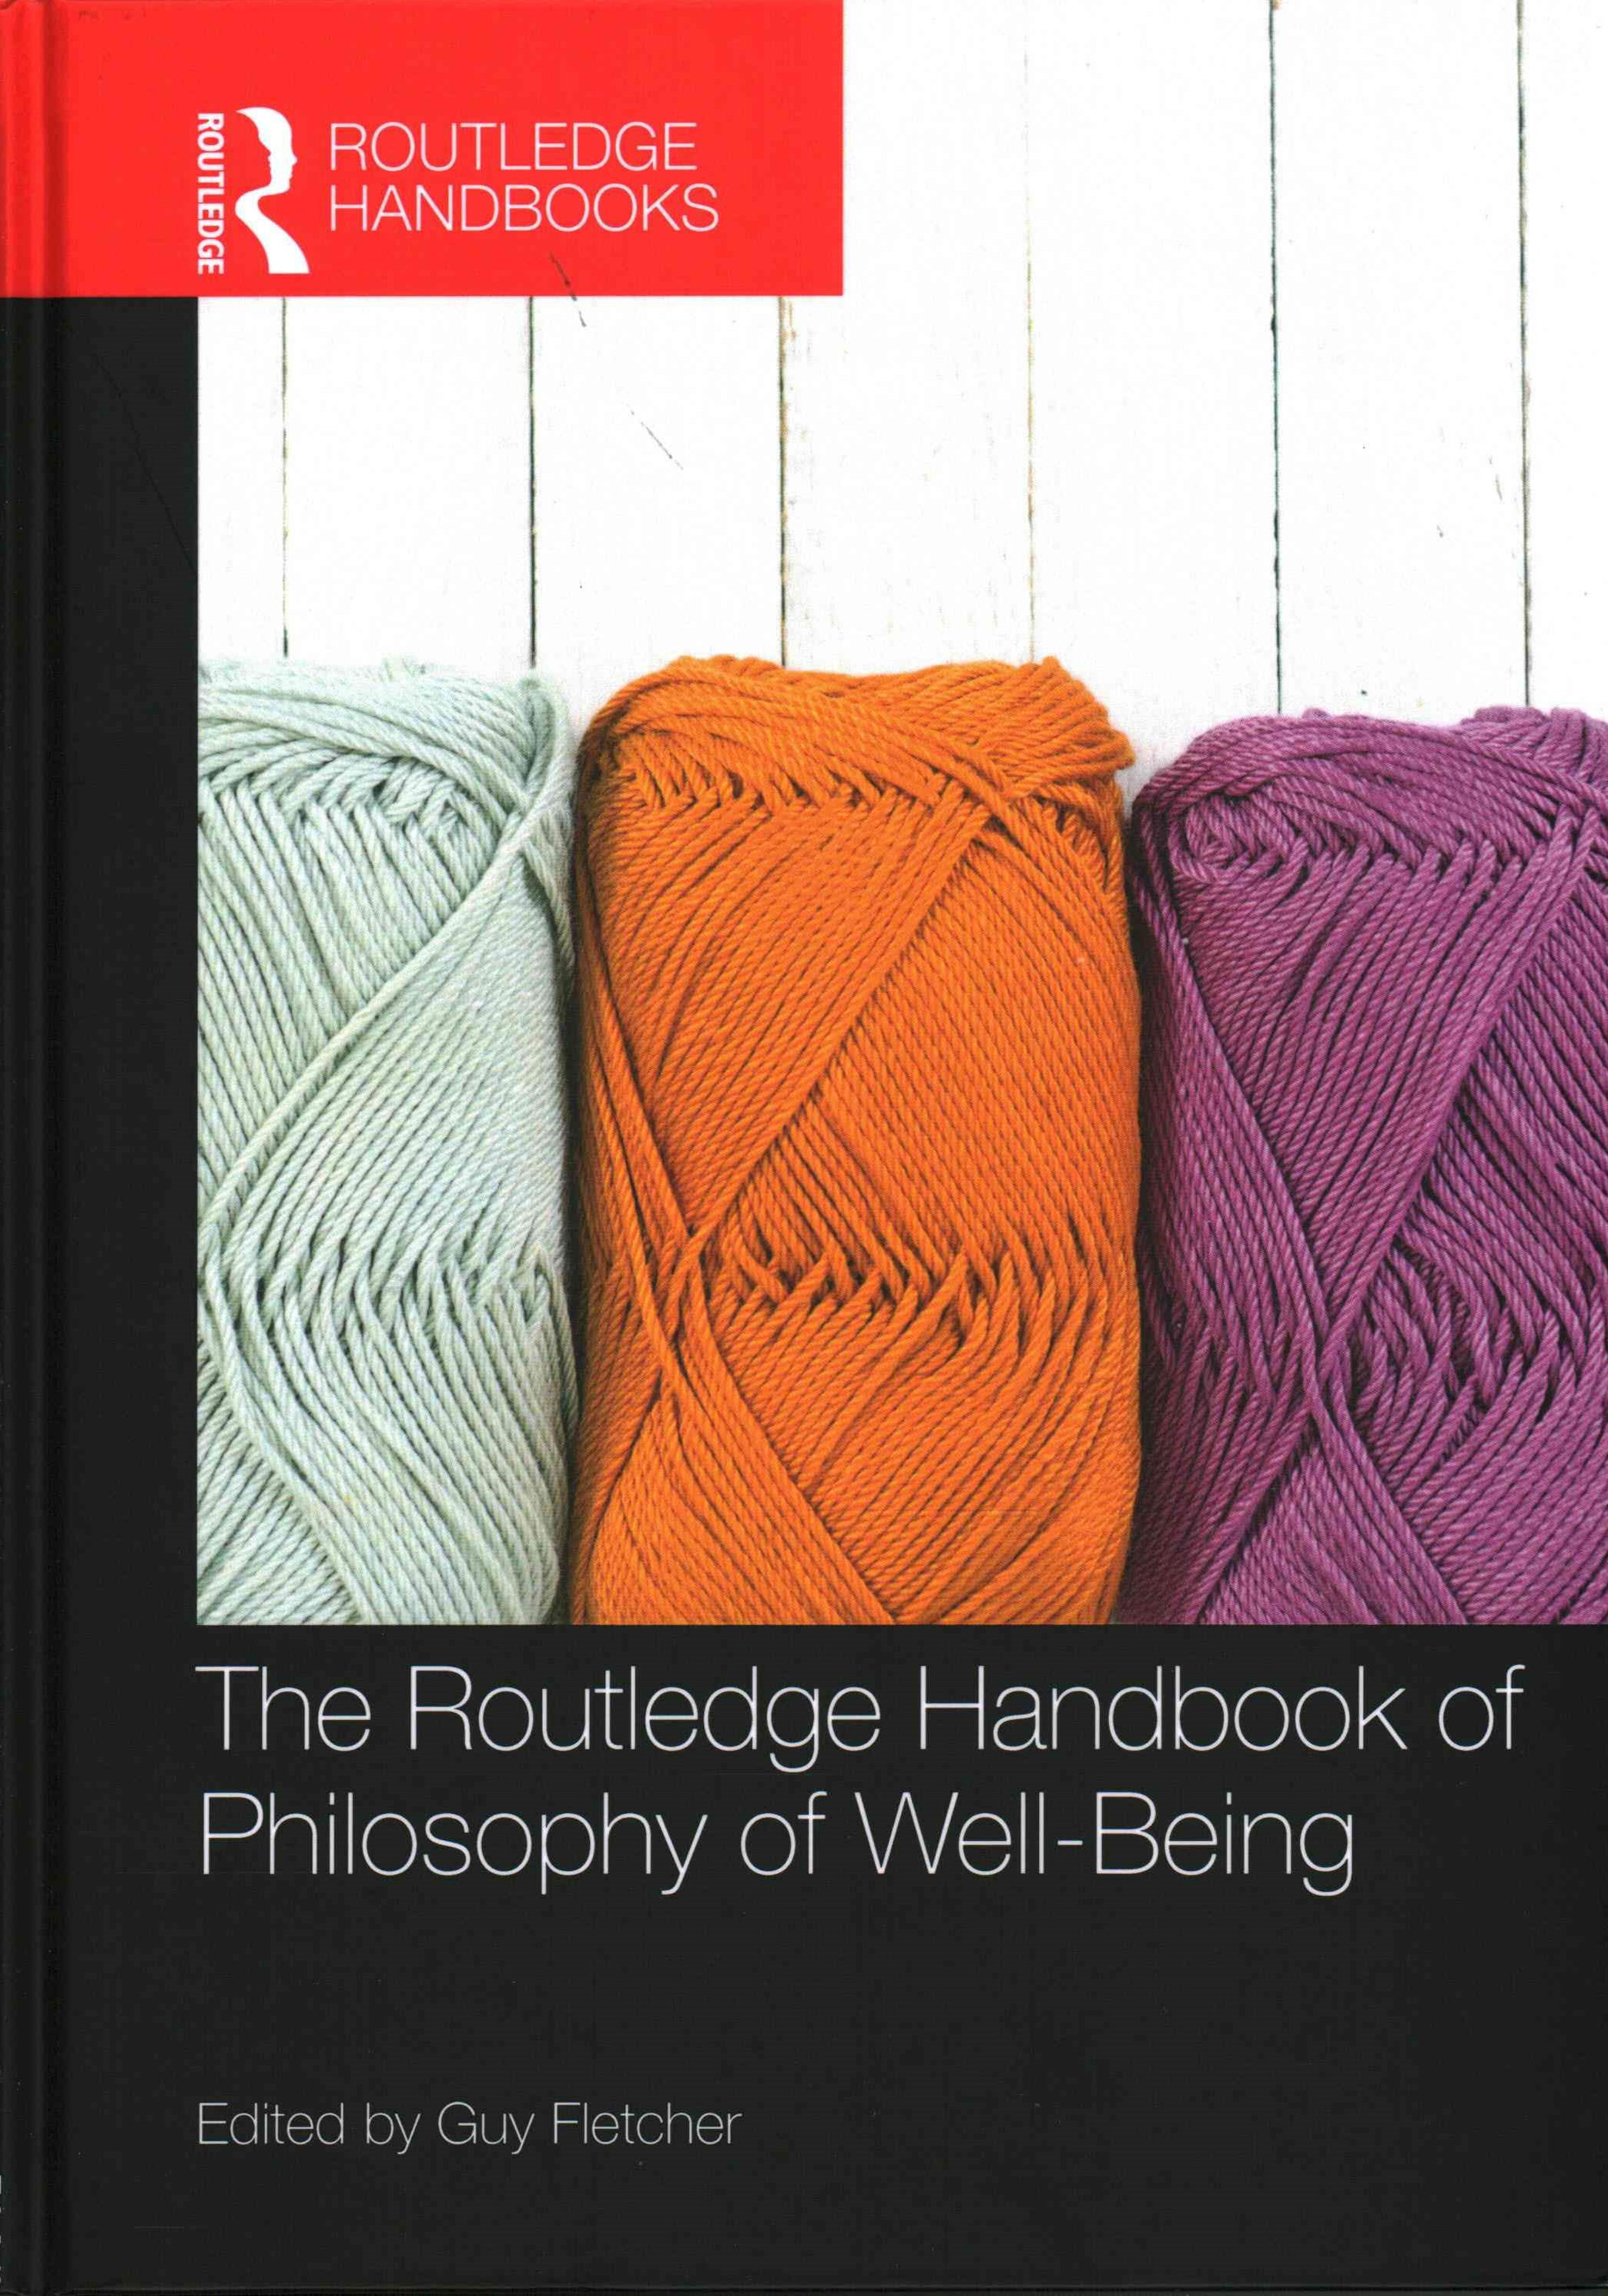 Routledge Handbook of Philosophy of Well-Being